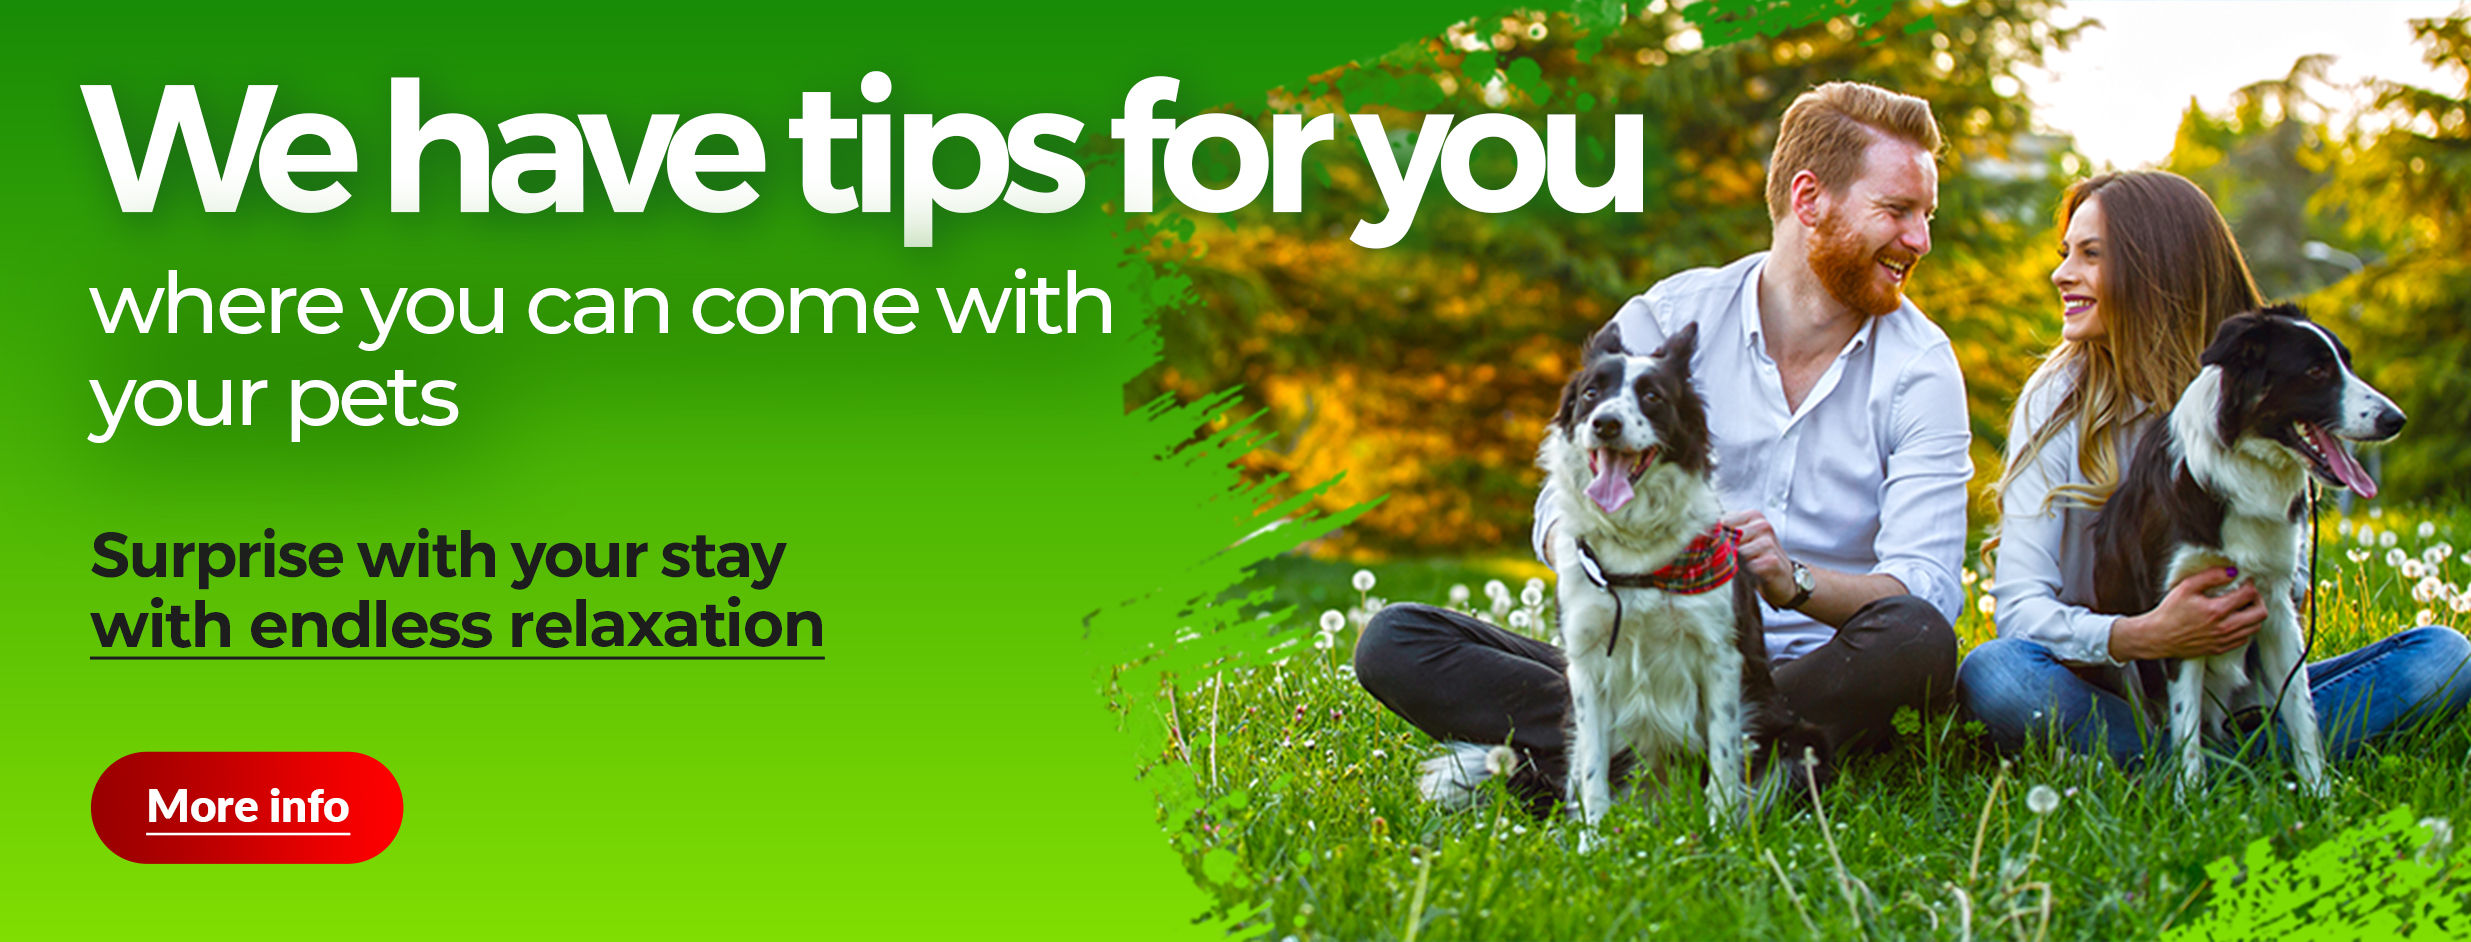 We have a tip where you can come with your pets